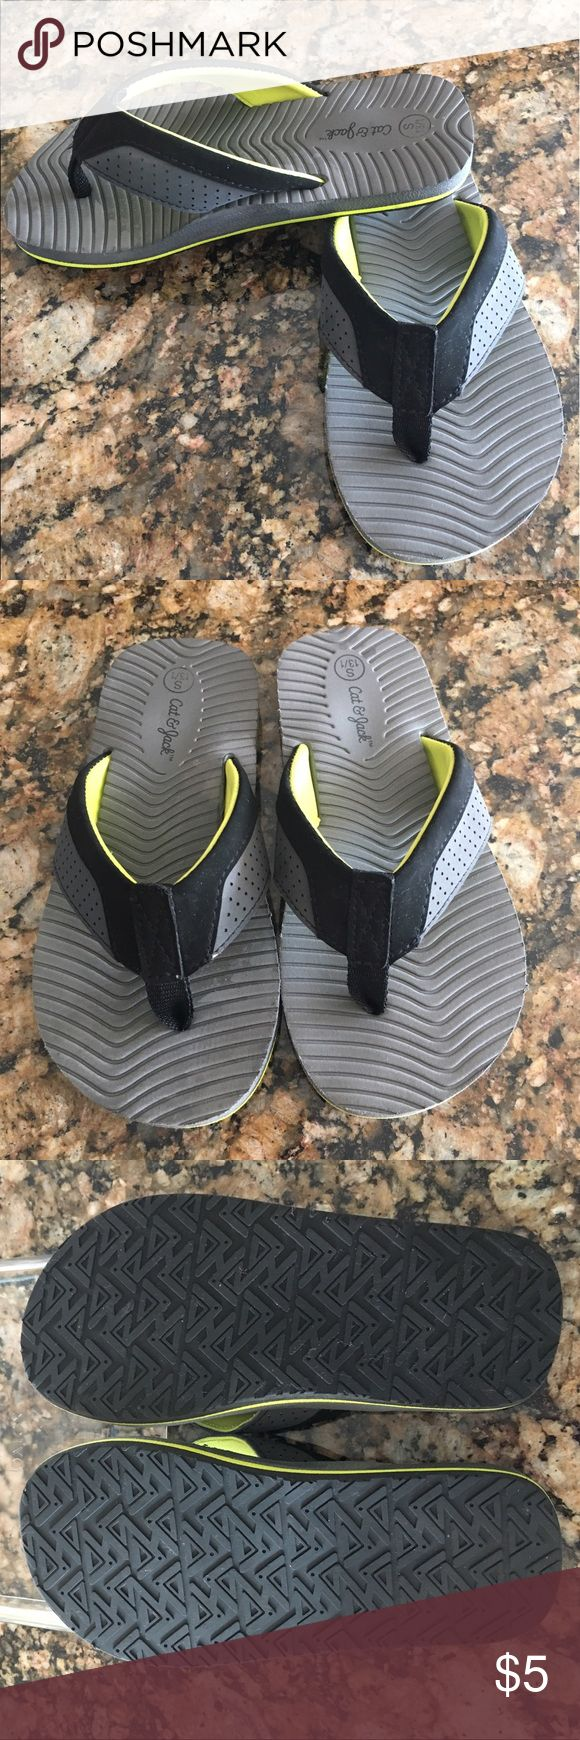 Like New!  Boys flip flop by Cat and Jack size S Like New!  Boys Flip Flops by Cat and Jack!  Gray, black with a touch of fluorescent yellow will go with just about anything.  Hardly worn as you can see from the pictures!  Lots of life left in these - lots of summer left! ☀️☀️☀️ cat and jack Shoes Sandals & Flip Flops